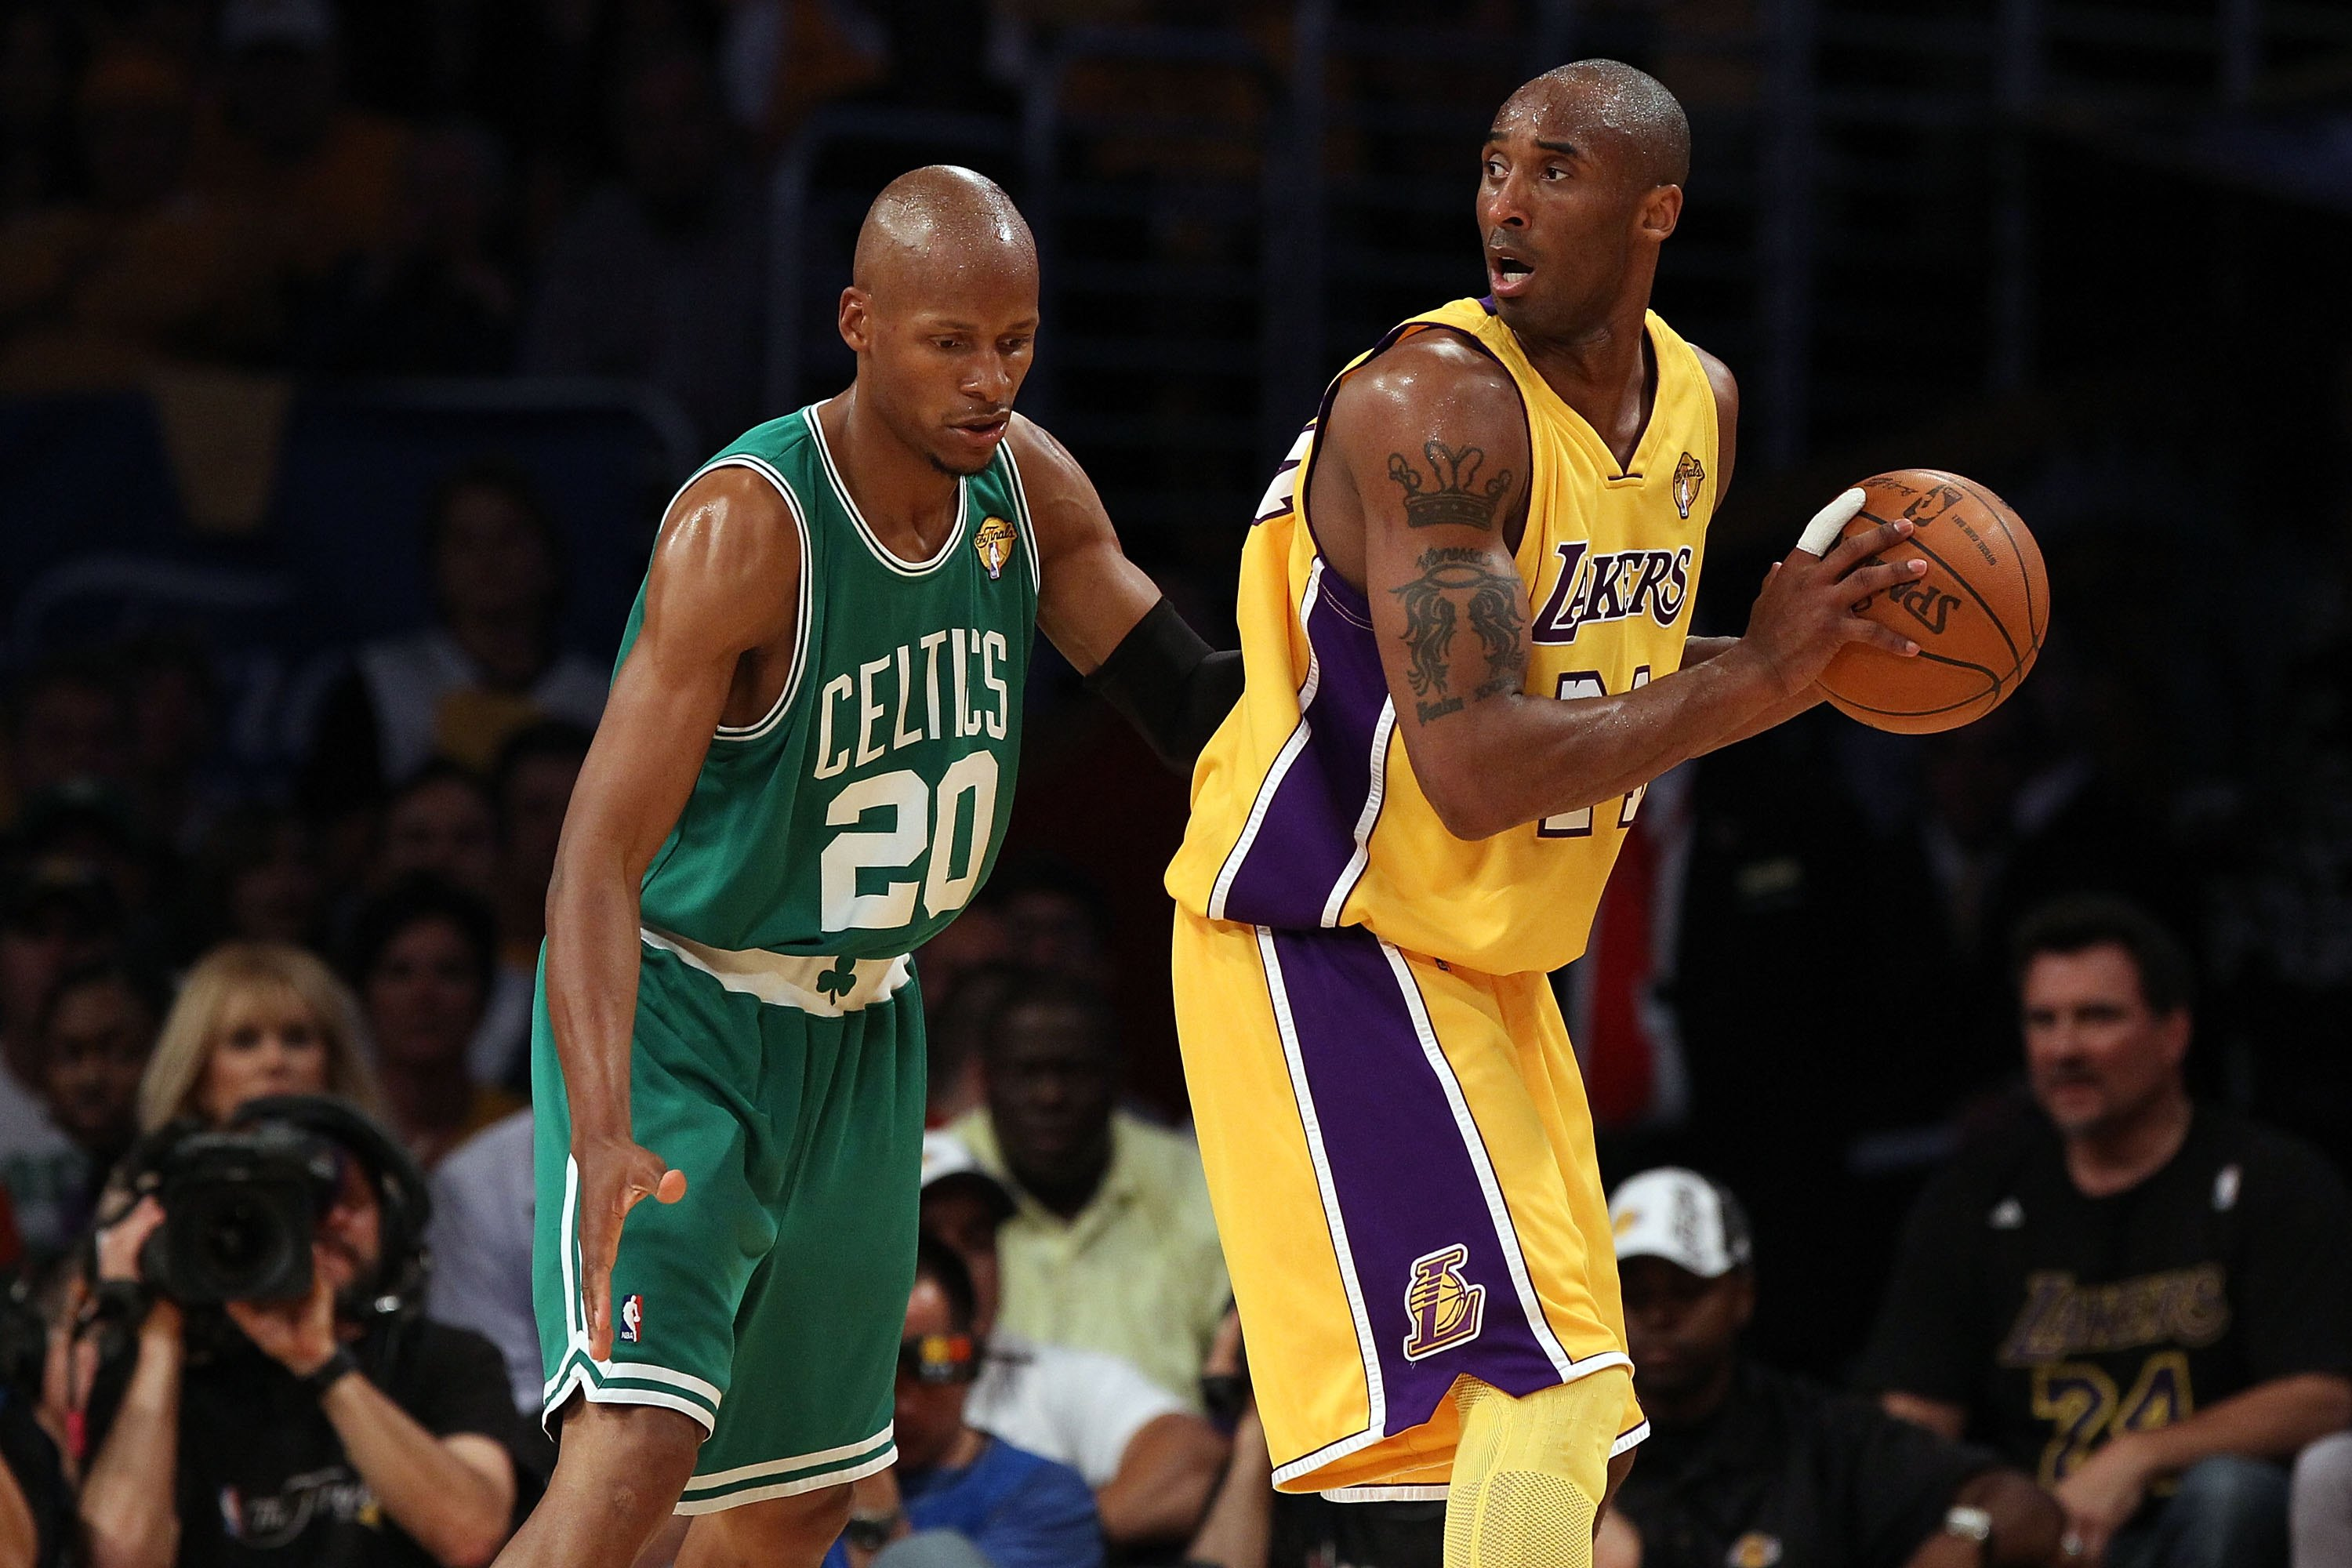 Kobe Bryant in the 2010 NBA Finals